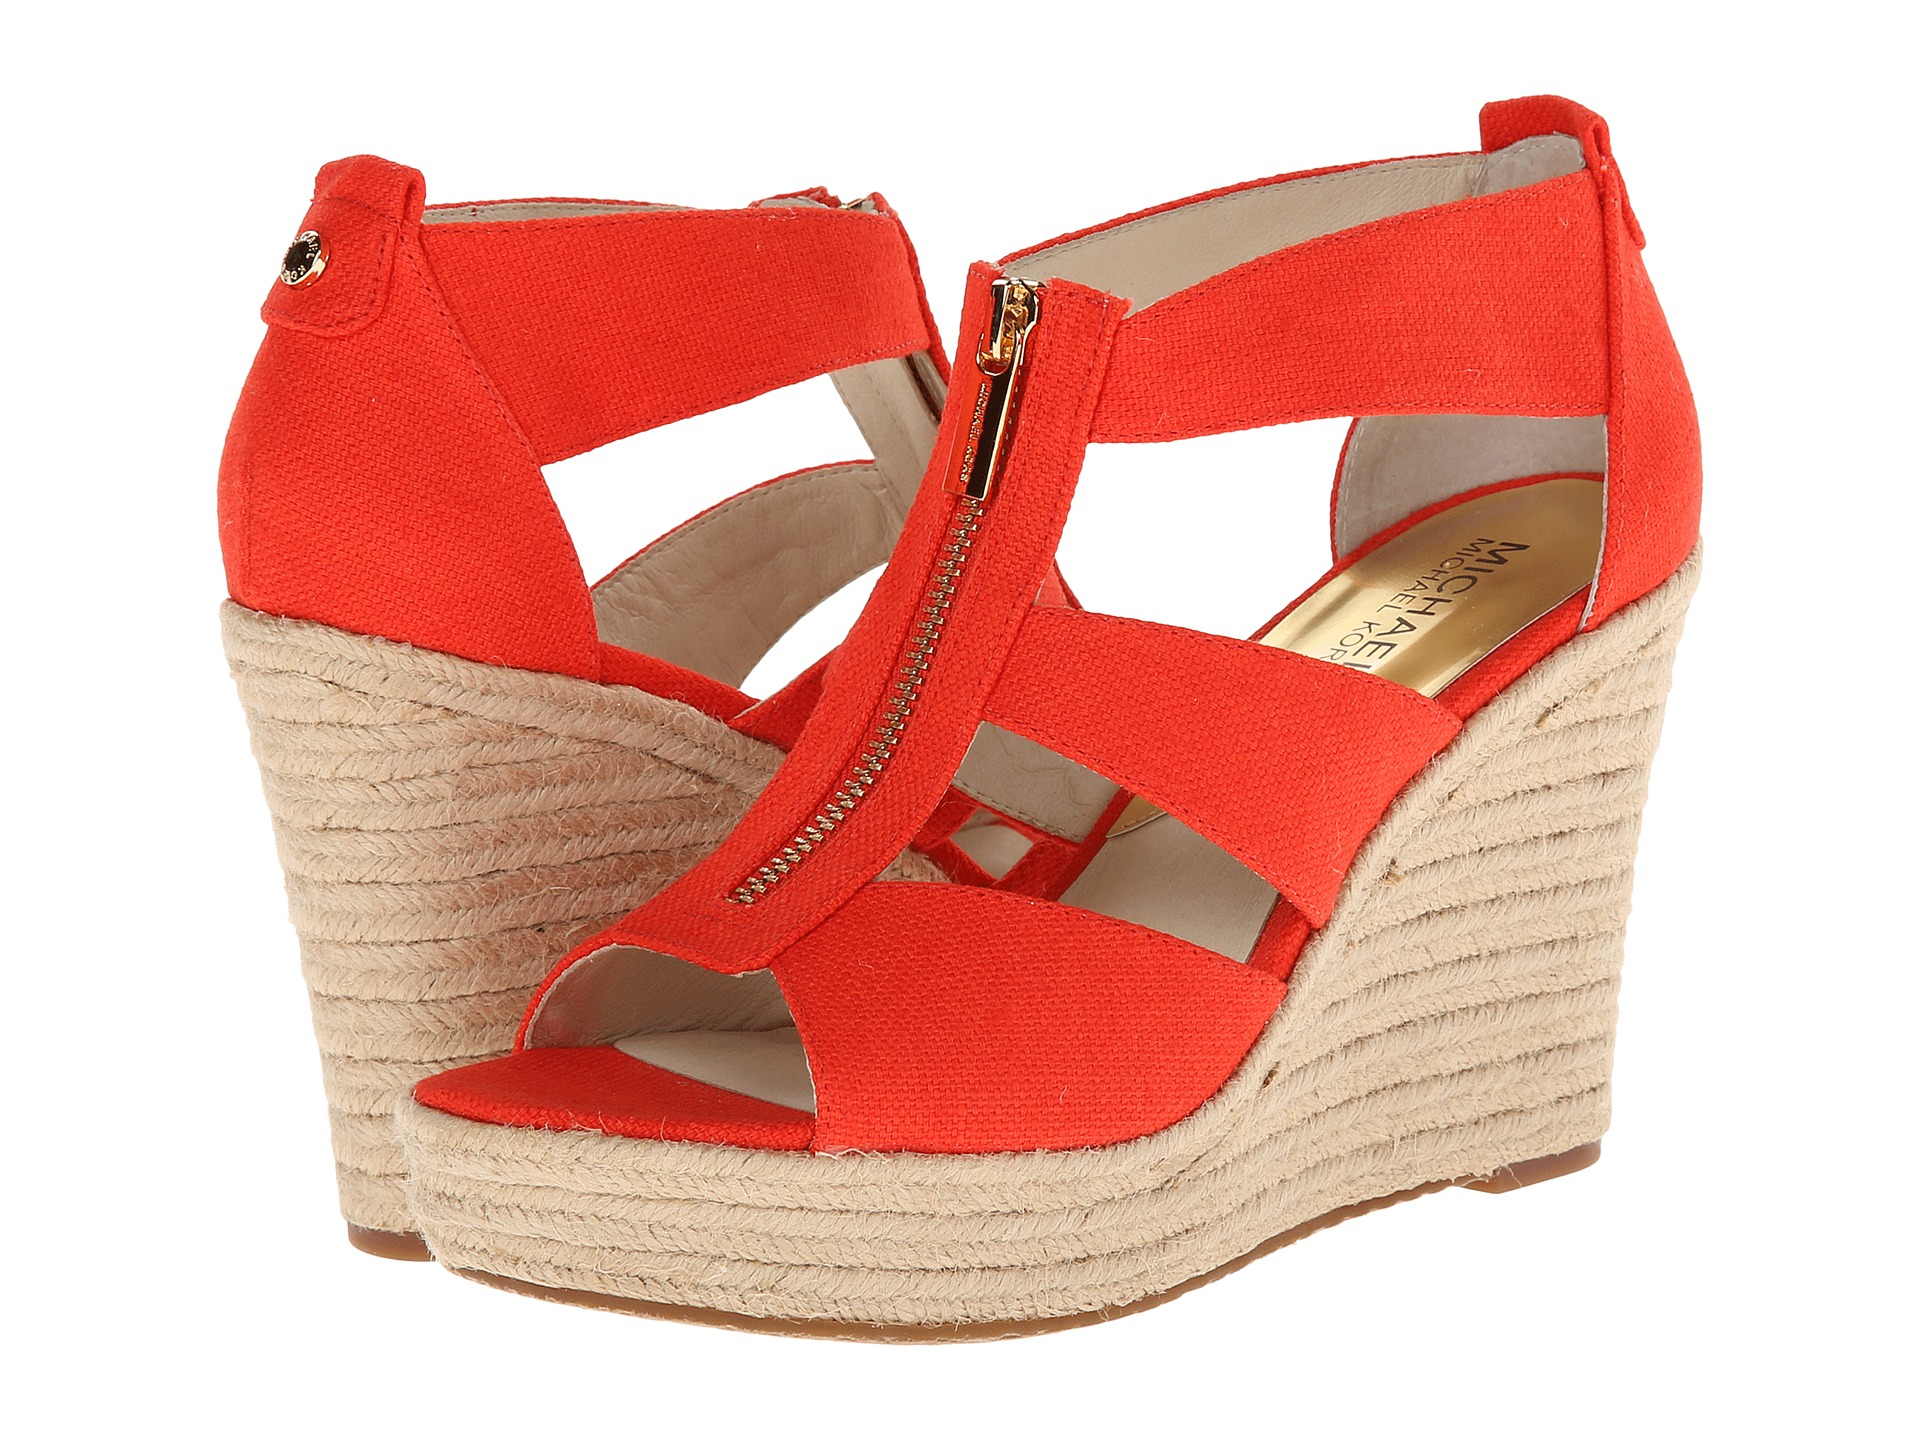 a4f6f2ae417 Lyst - MICHAEL Michael Kors Damita Wedge in Red